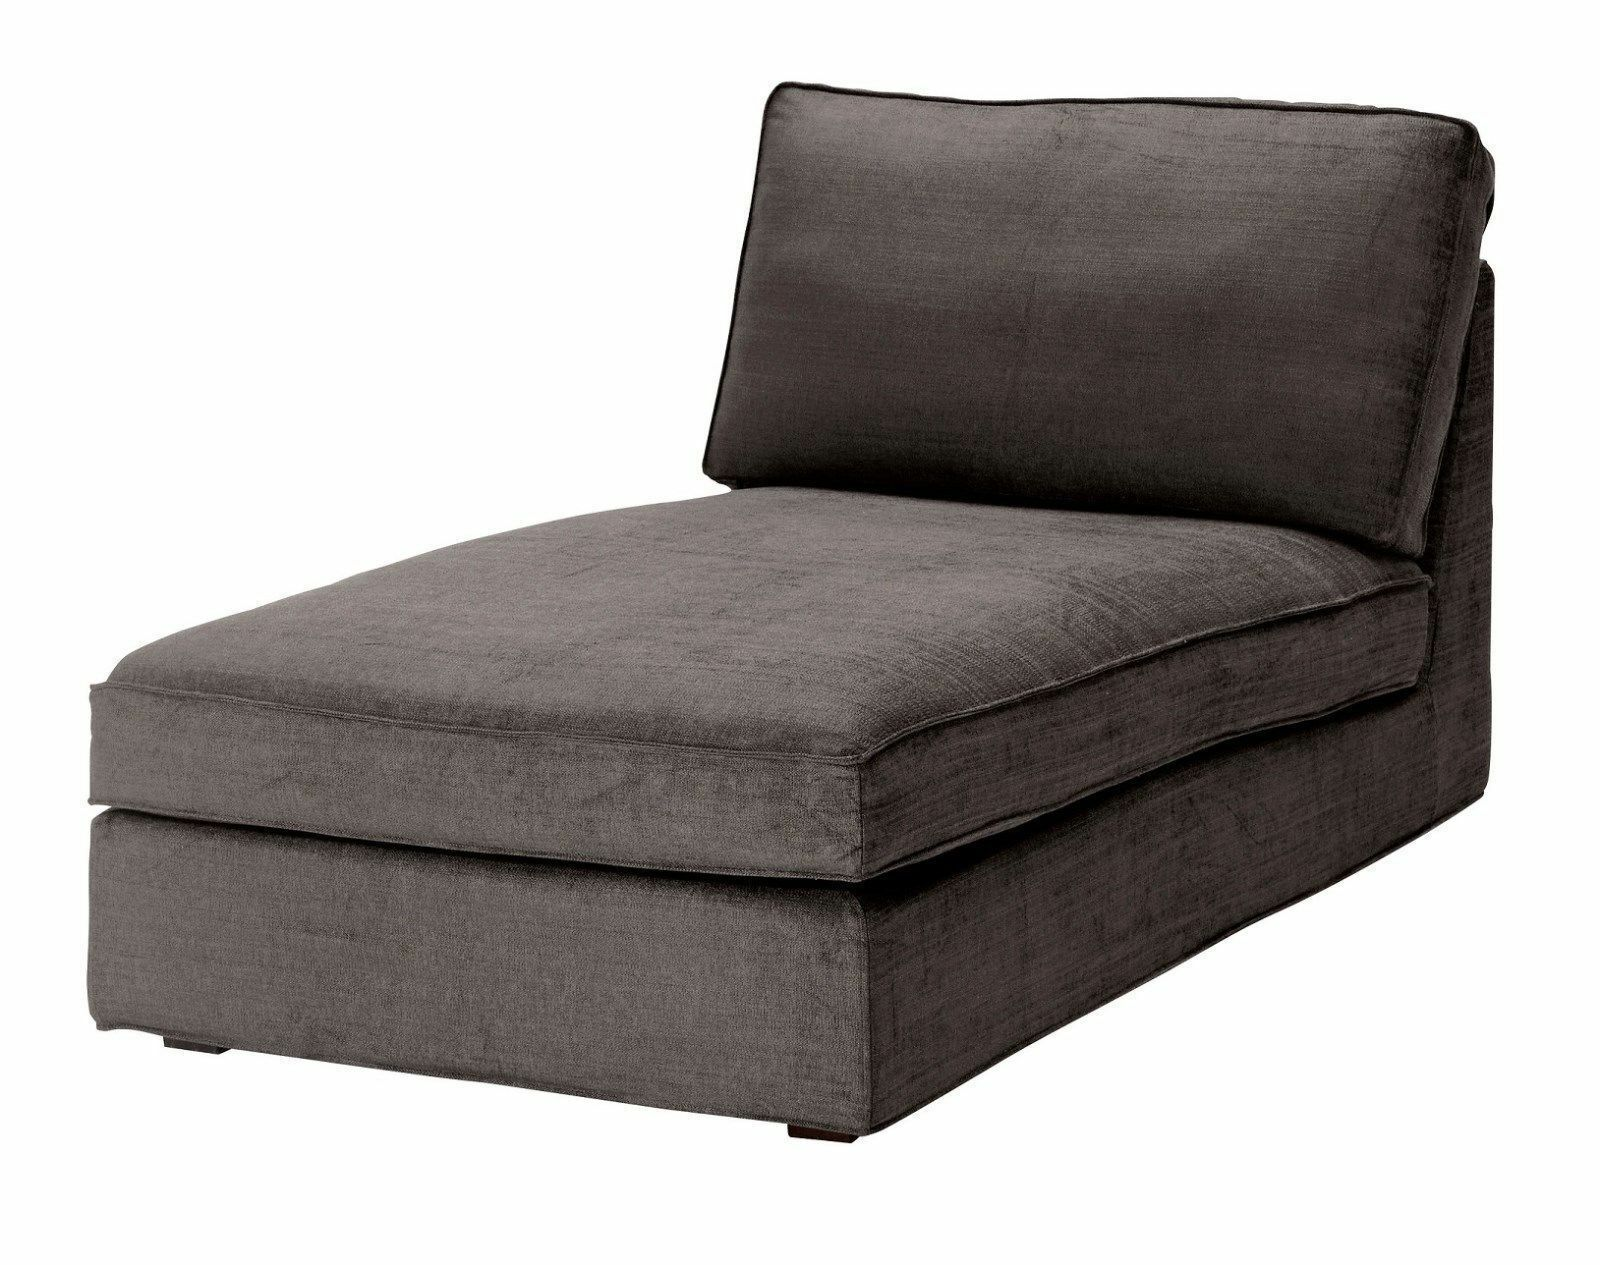 Ikea kivik chaise lounge slipcover cover tullinge gray for Ikea club chair